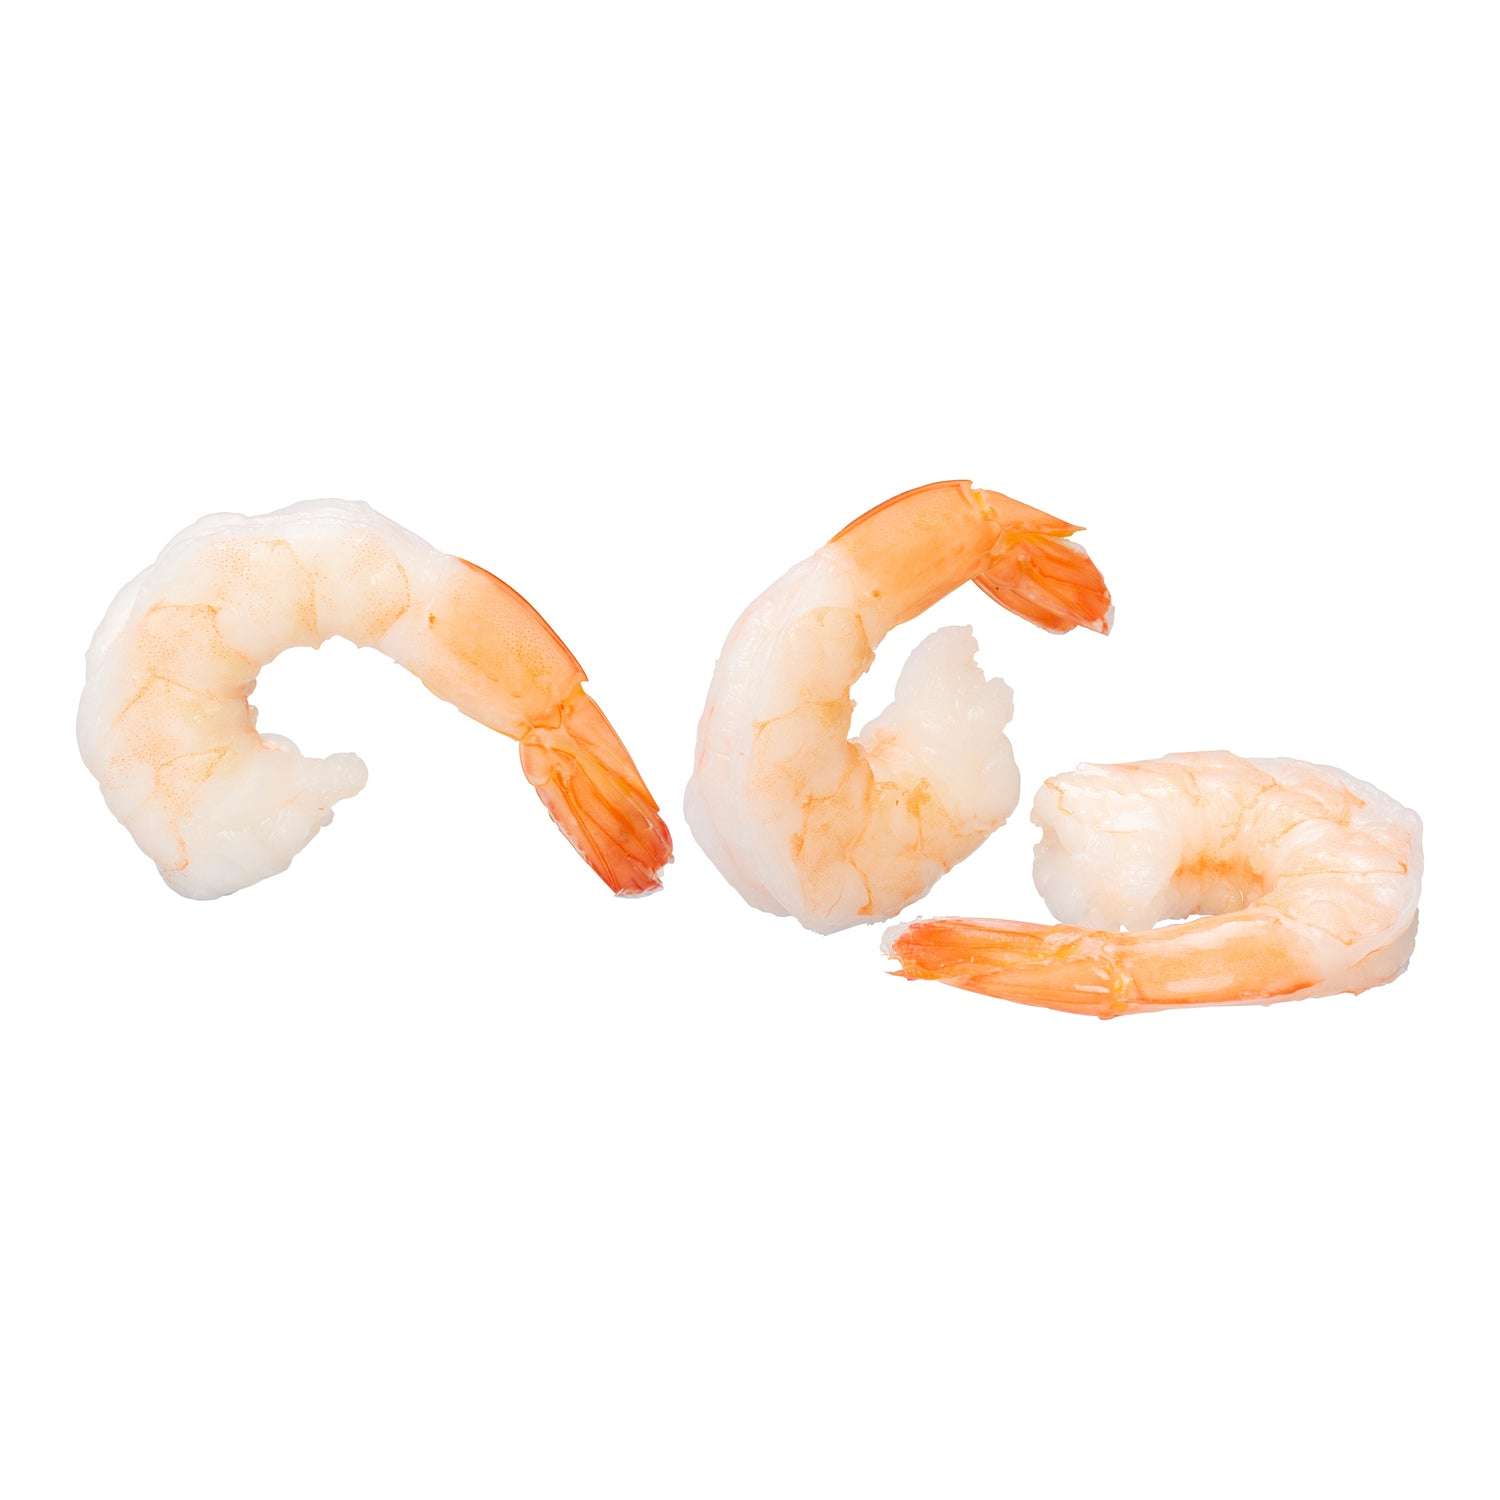 IFC Individually Quick Frozen White Shrimp Peeled & Deveined Tail On 2 lb Fully Cooked - 5 Pack [$12.50/lb]